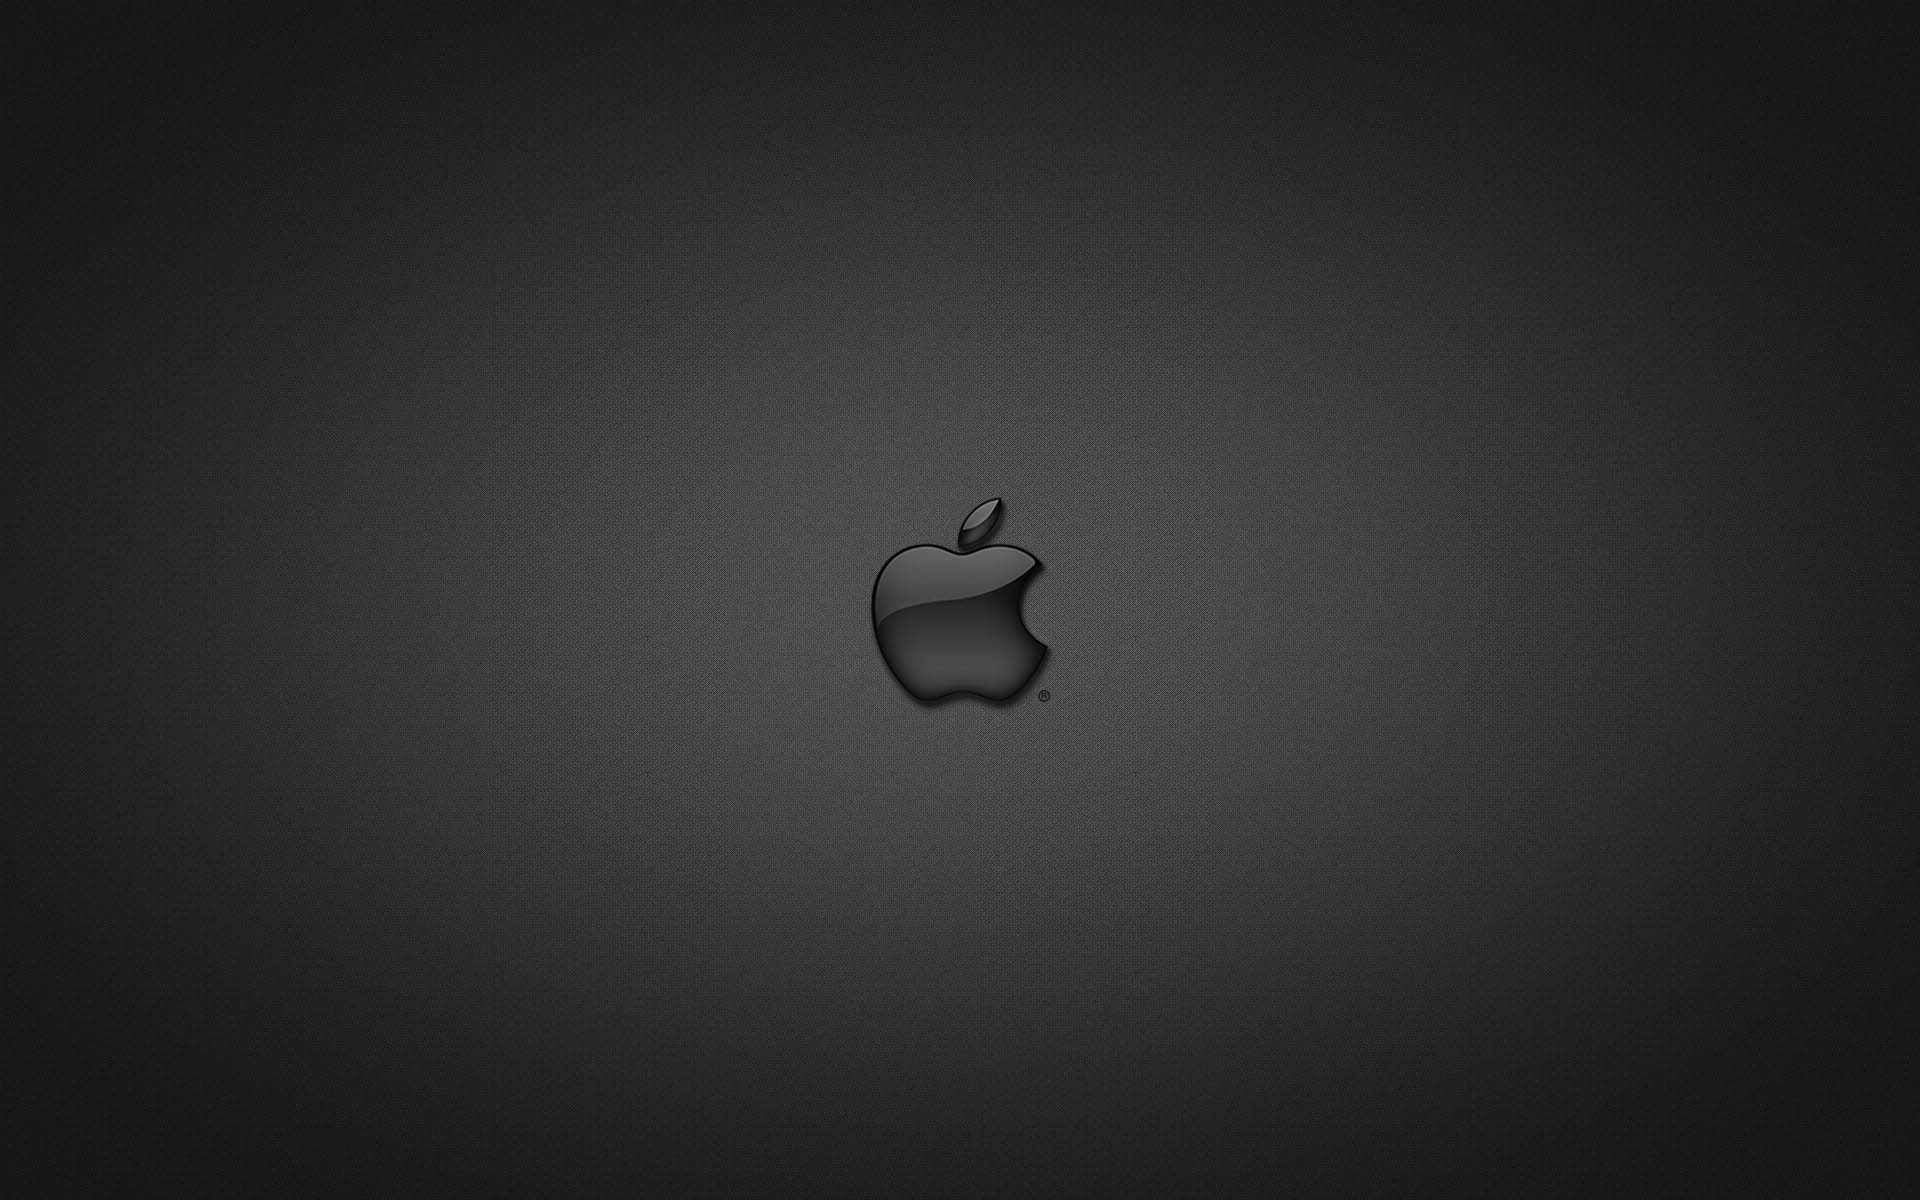 Apple Logo Wallpapers HD A21